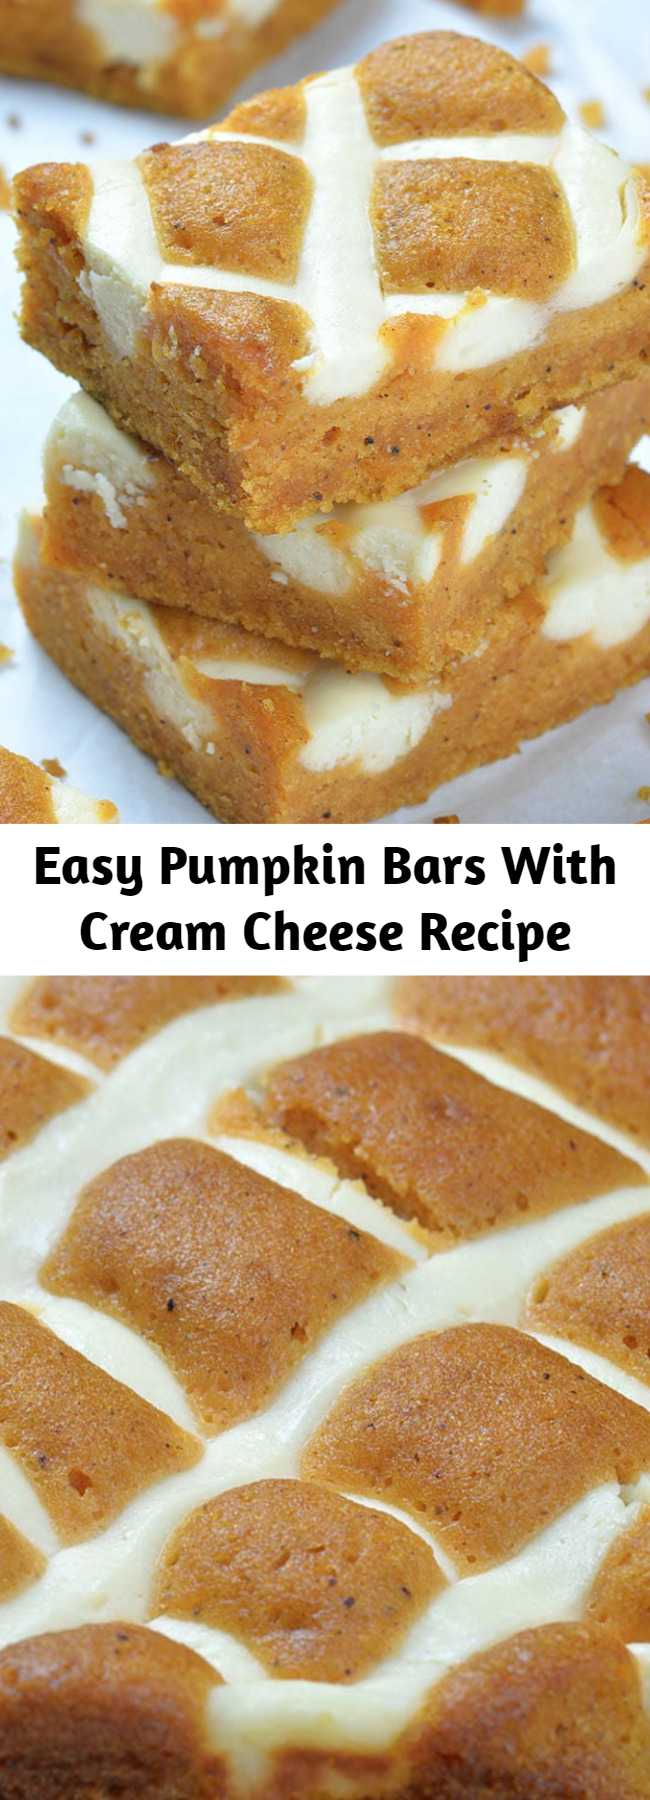 Easy Pumpkin Bars With Cream Cheese Recipe - Pumpkin Bars with Cream Cheese is simple and easy dessert recipe for fall baking season. Moist and spicy pumpkin bars are delicious breakfast or snack. But this crowd-pleasing treat is fancy enough to be served as a dessert at Halloween party or as light and easy dessert after Thanksgiving dinner.